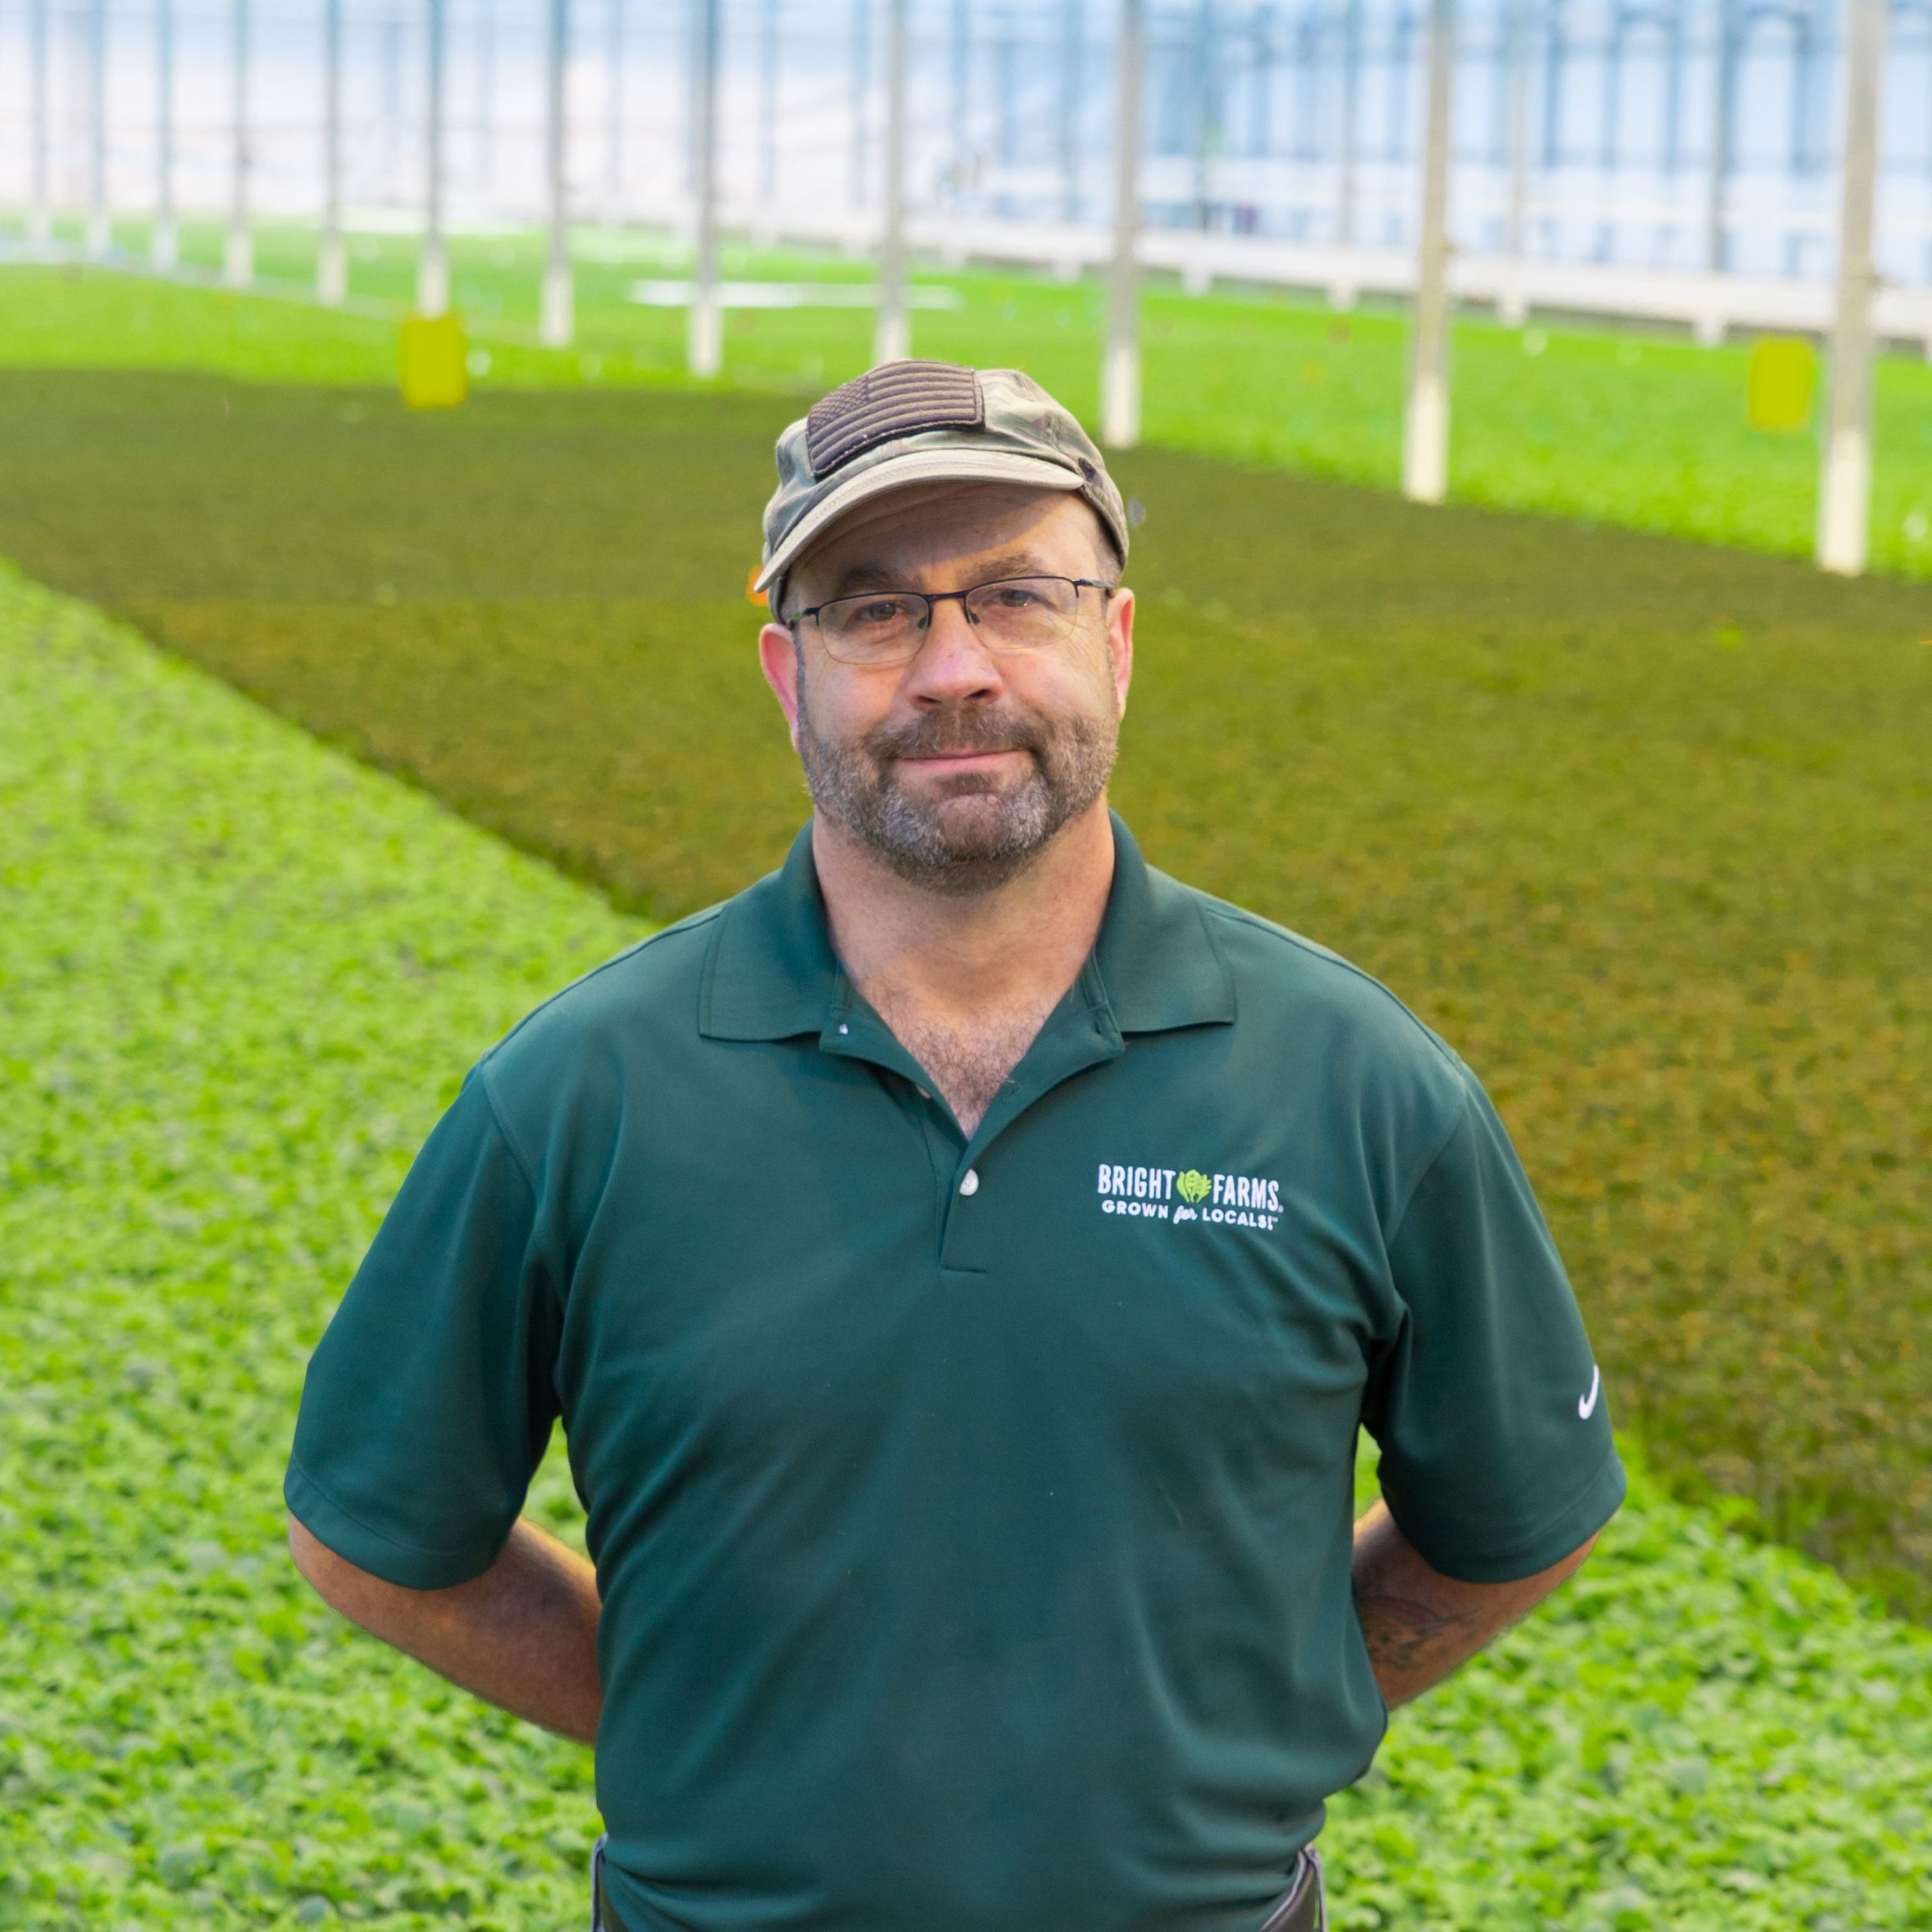 Tony Paar General Manager BrightFarms PENN PEN Greenhouse